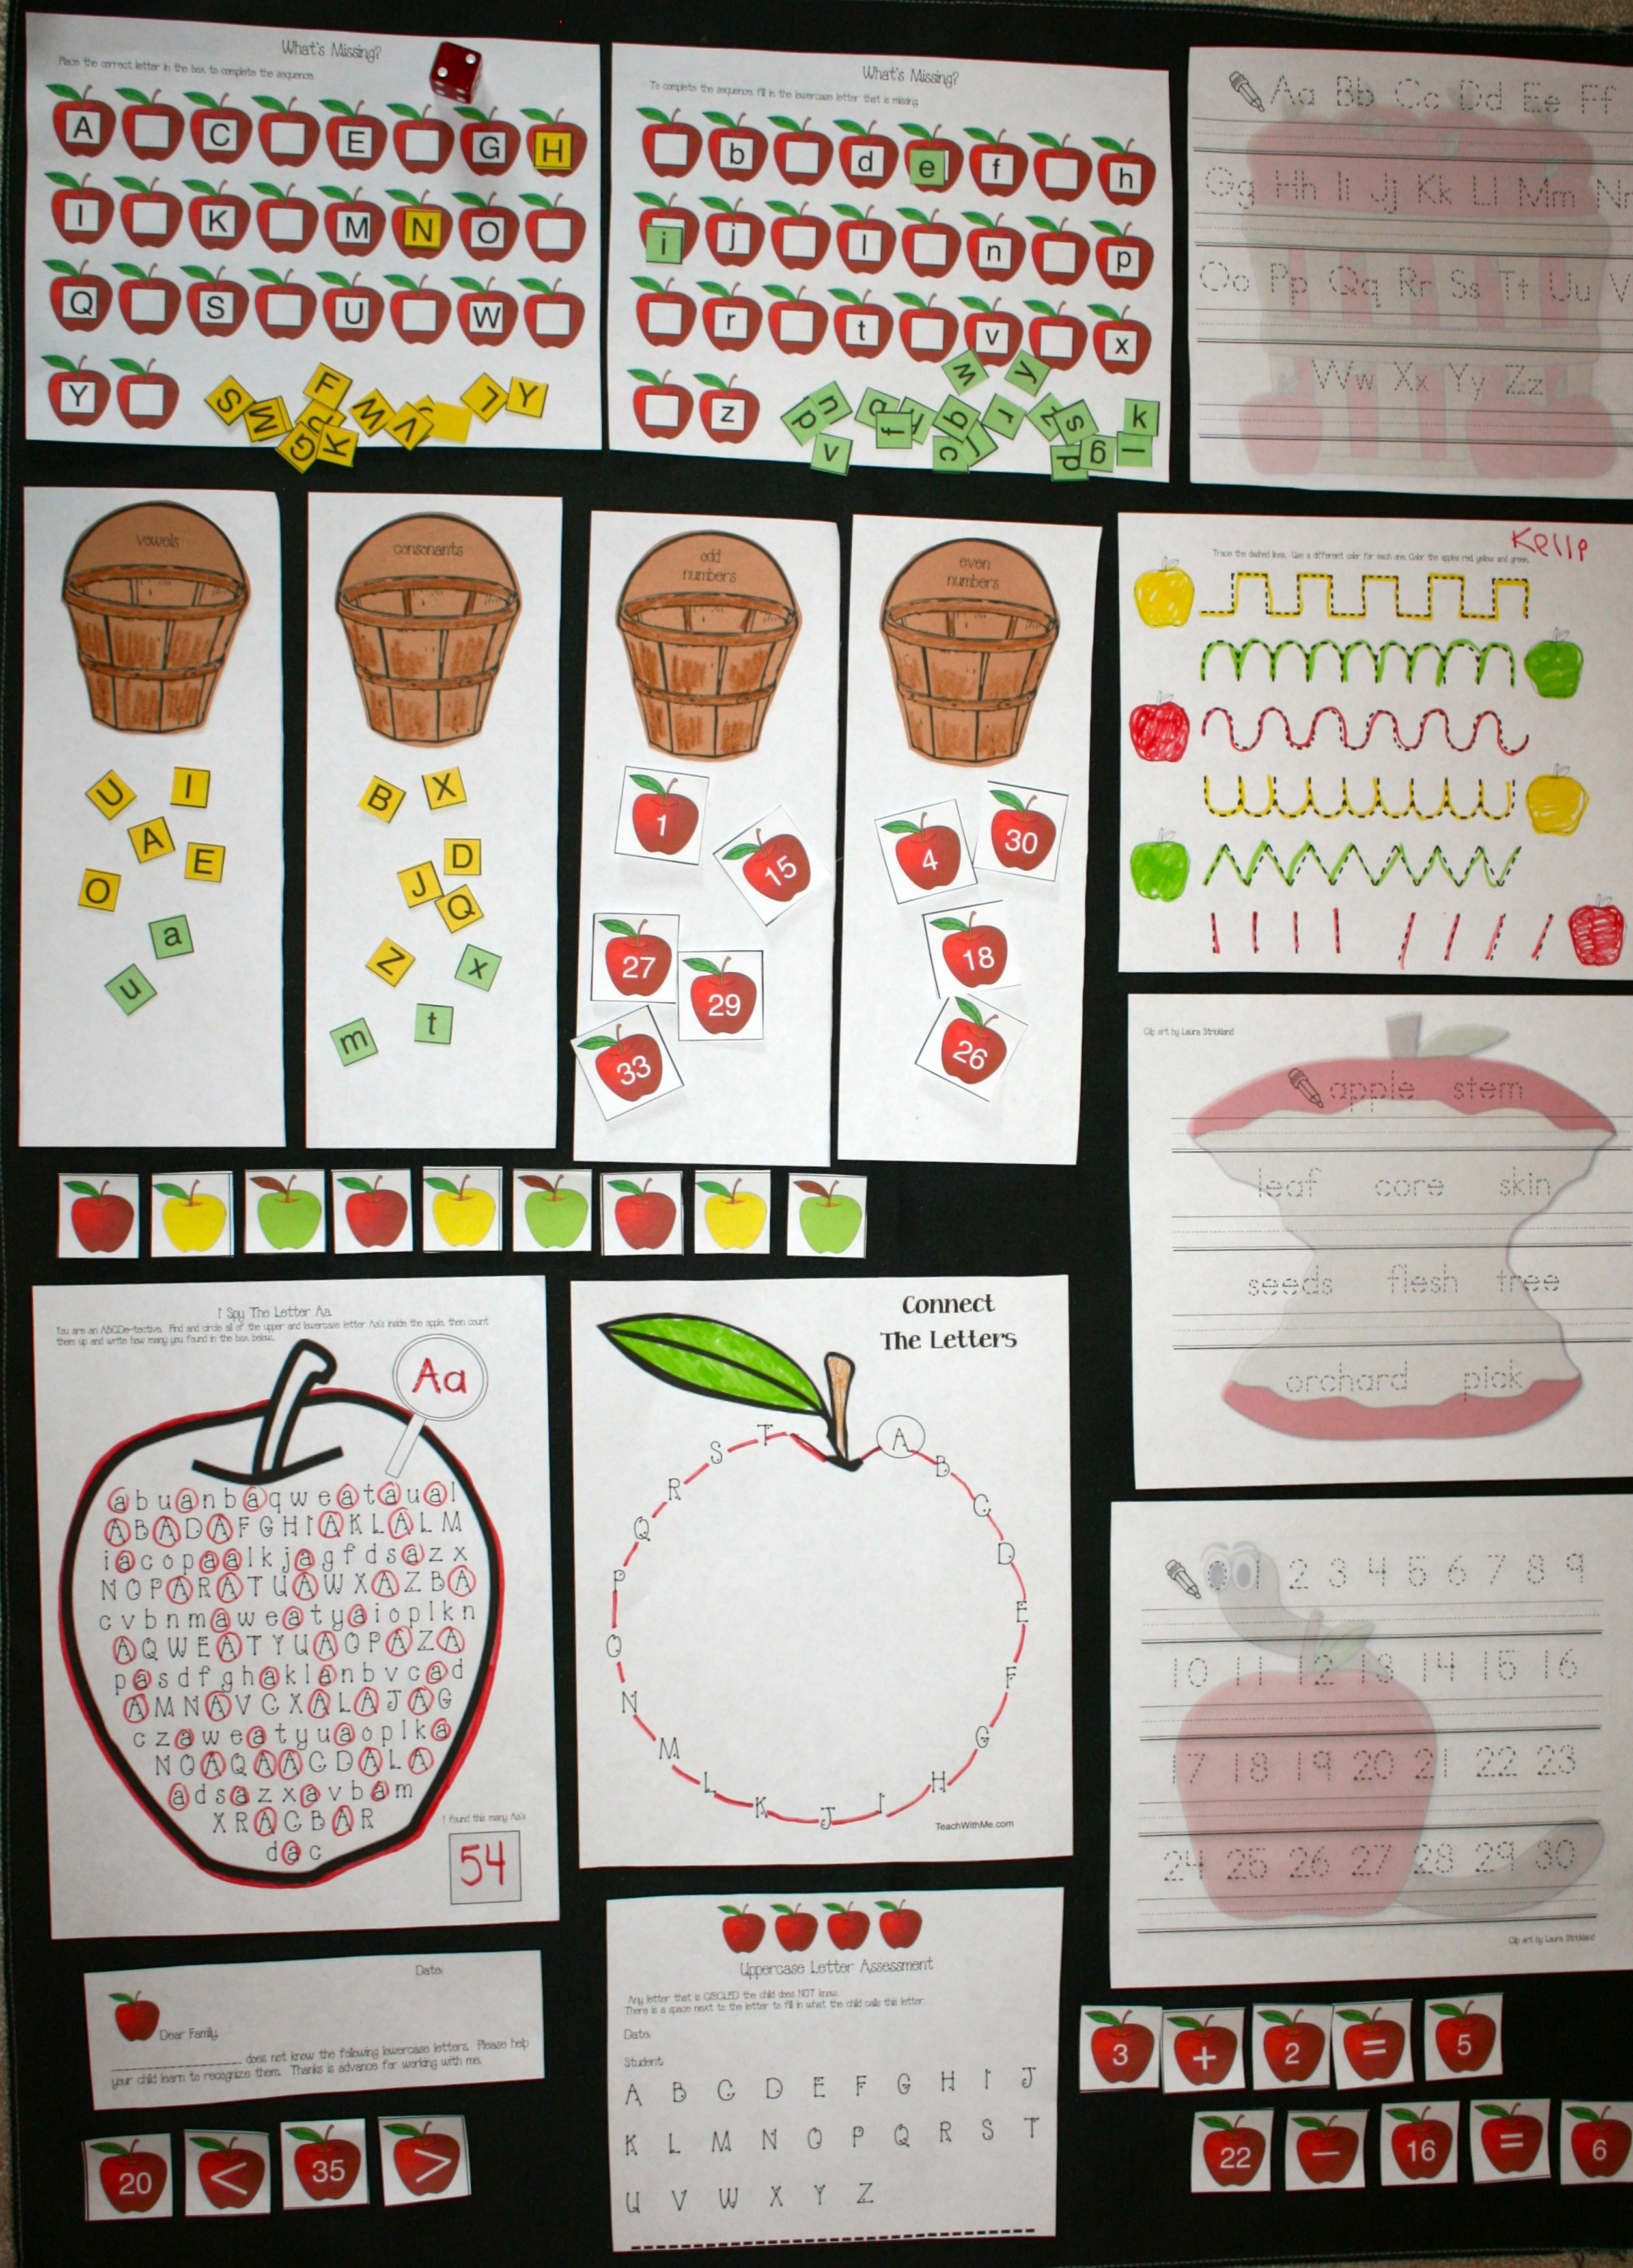 apple activities, apple alphabet cards, apple number cards, apple lessons, common core alphabet, apple worksheets, apple games, apple math activities, apple math centers, apple centers, apple alphabet activities, apple math activities, apple what's missing worksheets, greater and less than activities, apple sorting activities, vowels and consonants activities, letter activities, numbers cards from 1-120, red, green and yellow apple cards, free apple activities, addition and subtraction activities with apples, addition and subtraction activities, apple number line, apple anchor charts, apple alphabet anchor chart, alphabet assessments, assessments for upper case letters, assessments for lowercase letters, apple number anchor chart